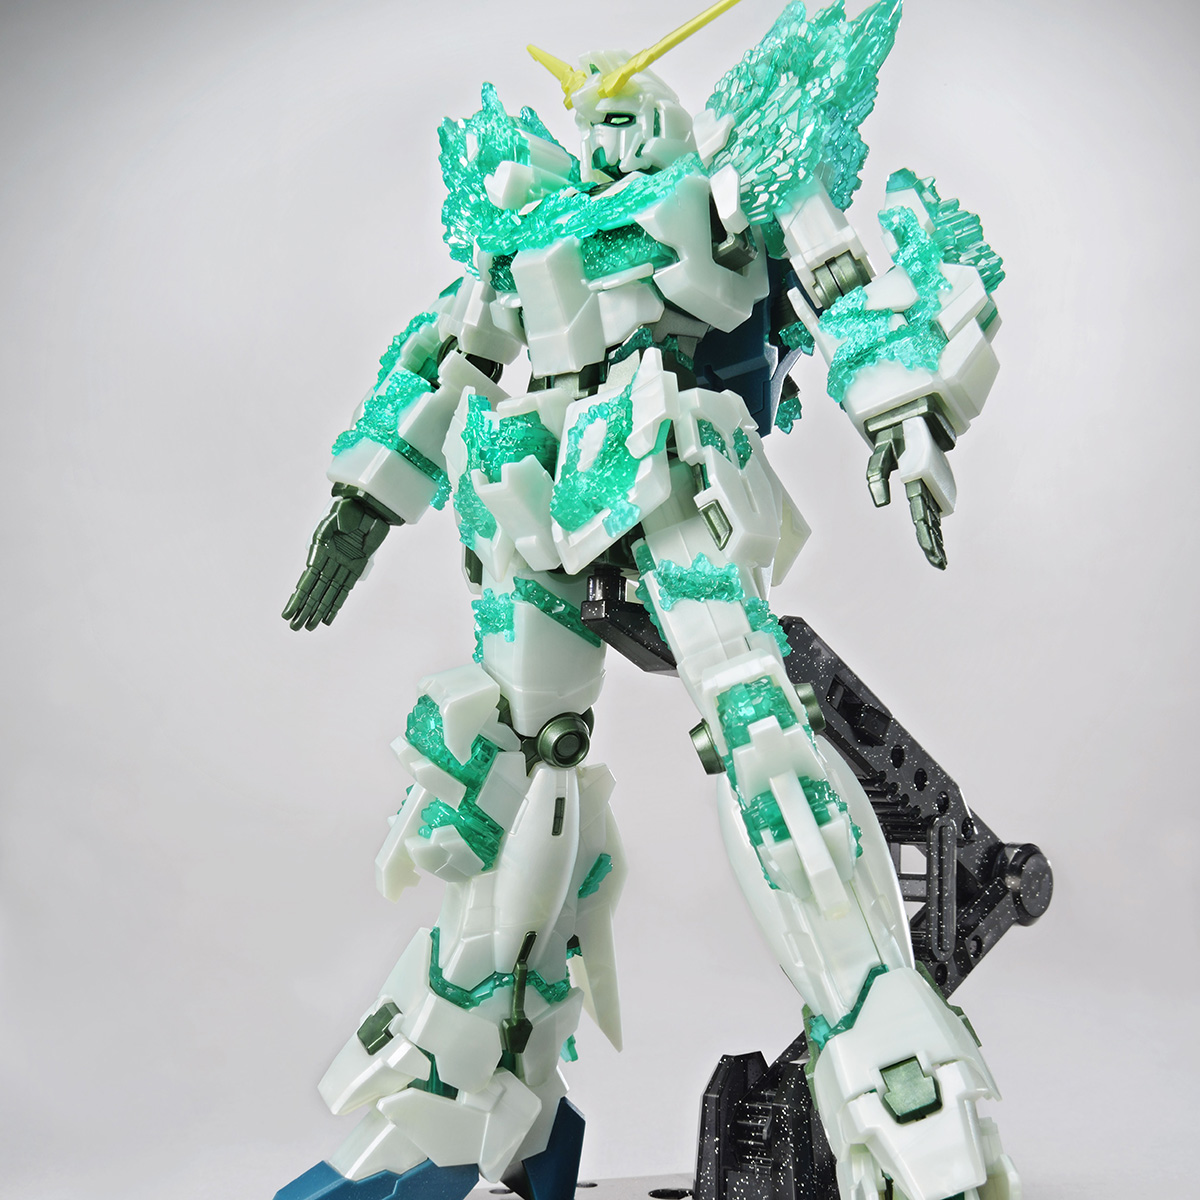 HG 1/144 THE GUNDAM BASE LIMITED UNICORN GUNDAM (LUMINOUS CRYSTAL BODY)[Sep 2020 Delivery]